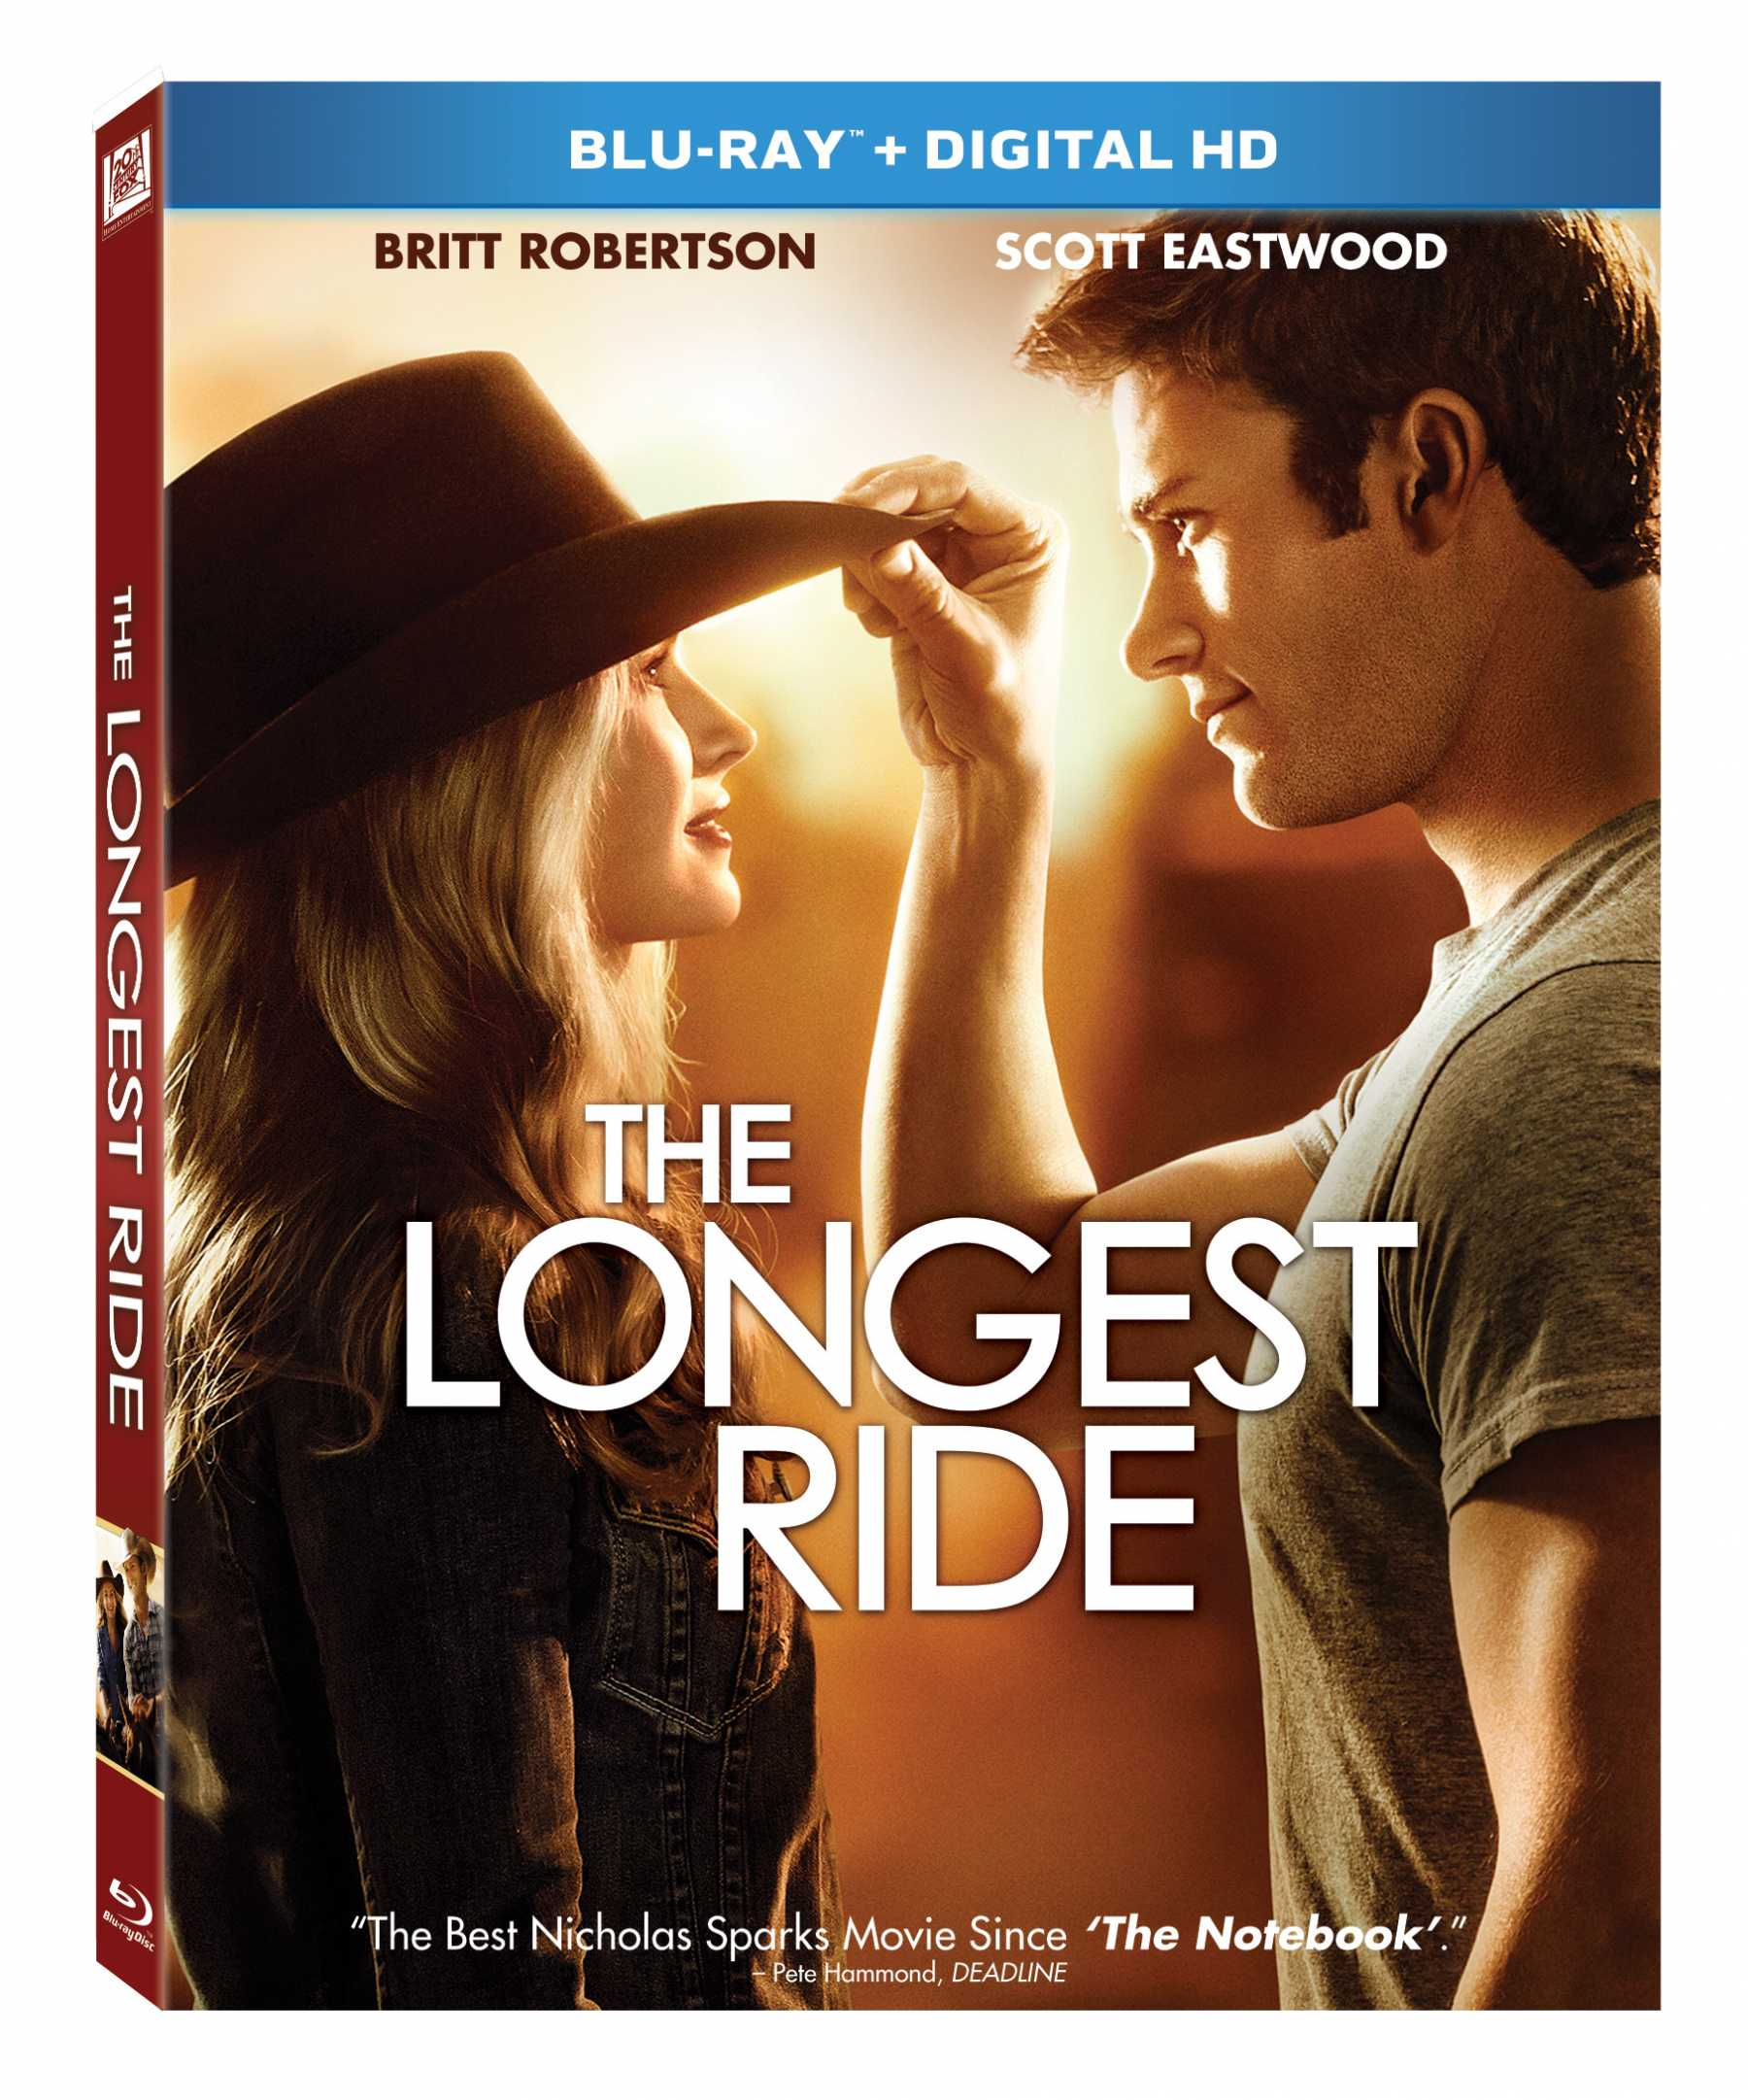 The Longest Ride Gallops Onto Blu-Ray | The Longest Ride